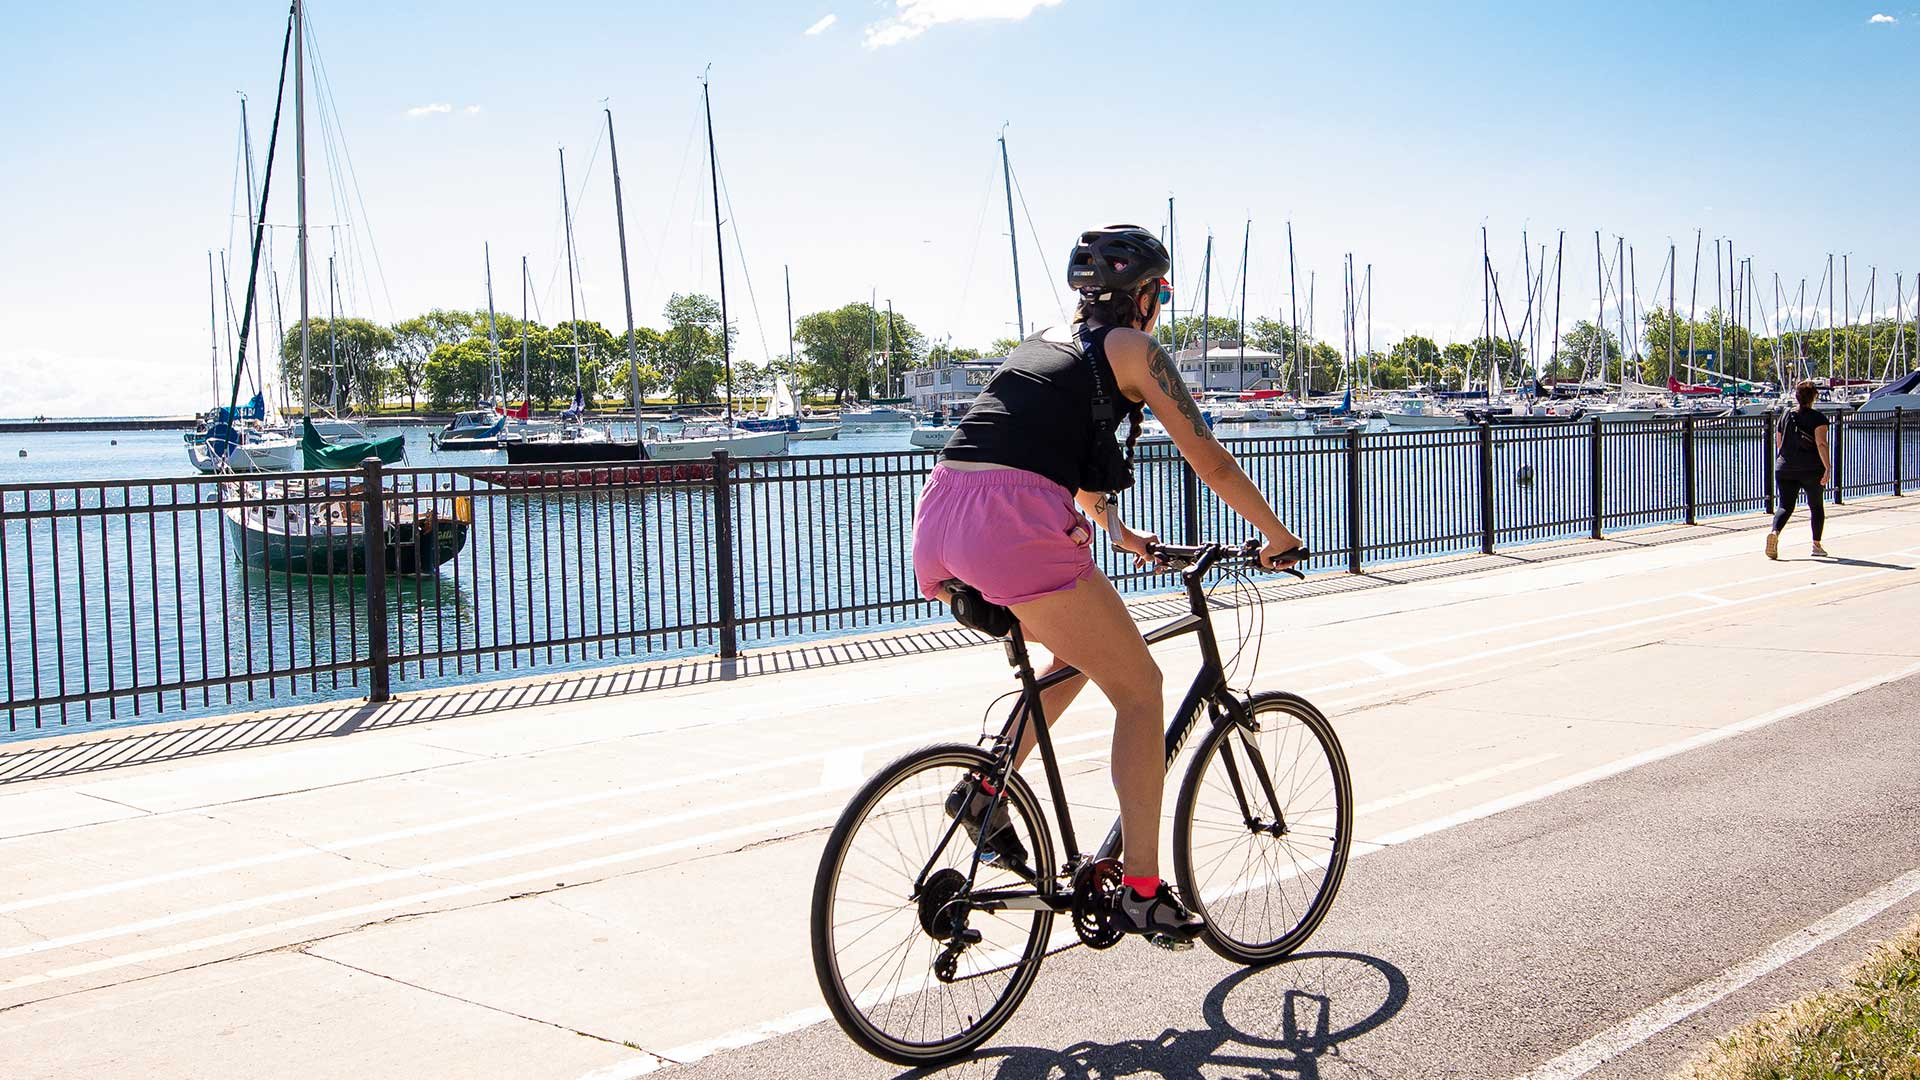 A woman rides her bike along the Lakefront Trail near Lake Michigan. Several boats are seen floating in the harbor behind her.